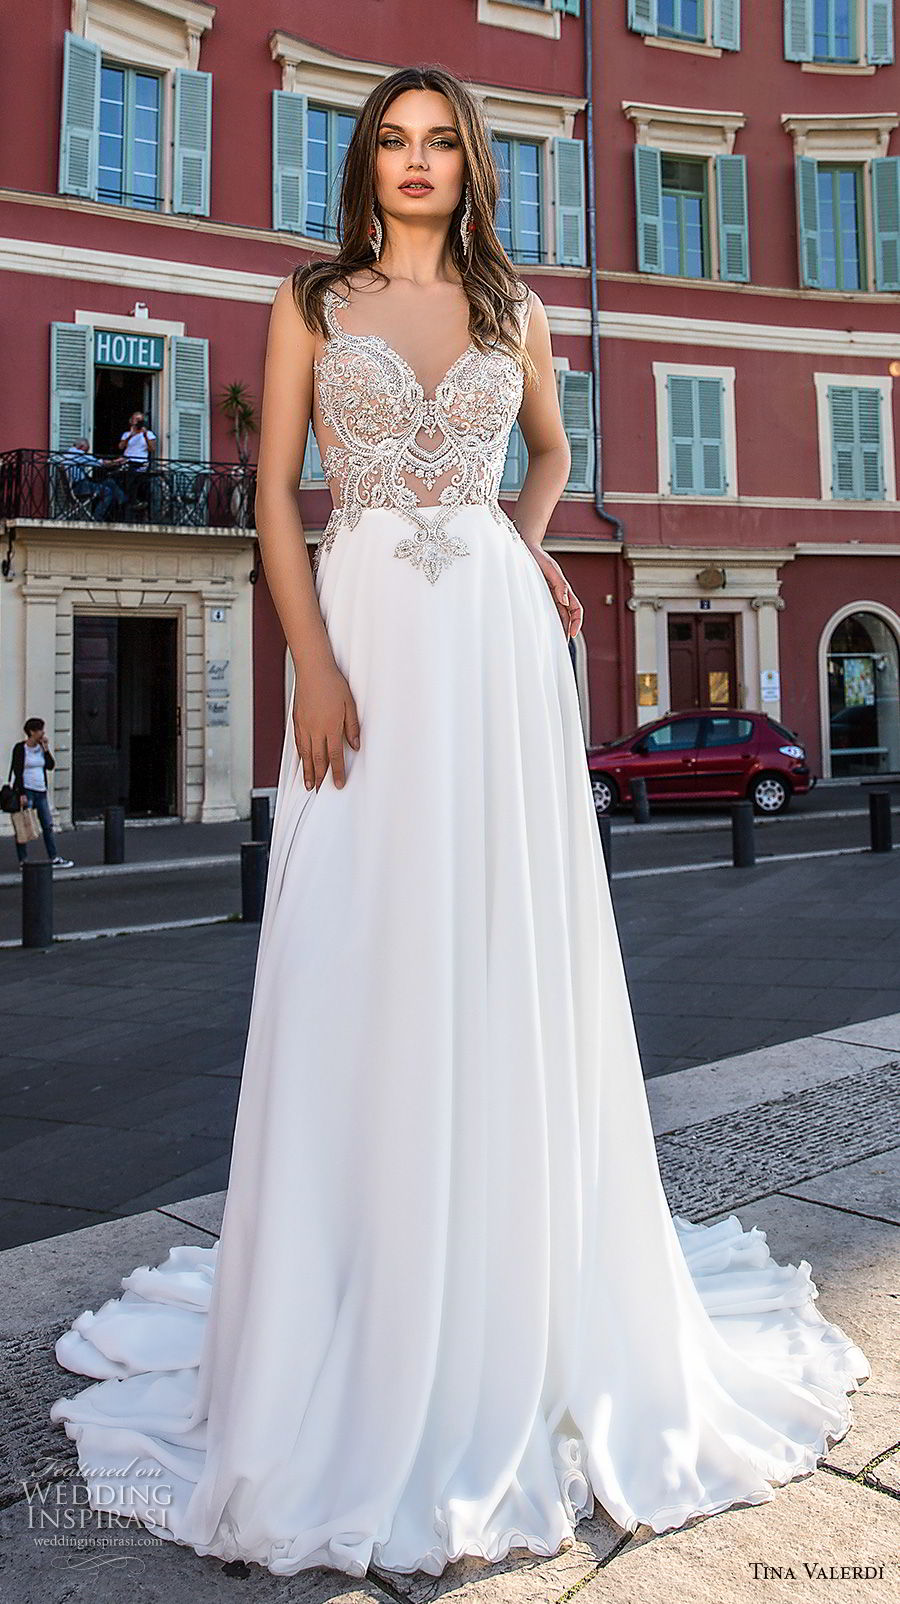 tina valerdi 2019 bridal sleeveless with strap sweetheart neckline heavily embellished bodice glitzy glamorous soft a line wedding dress v back chapel train (9) mv